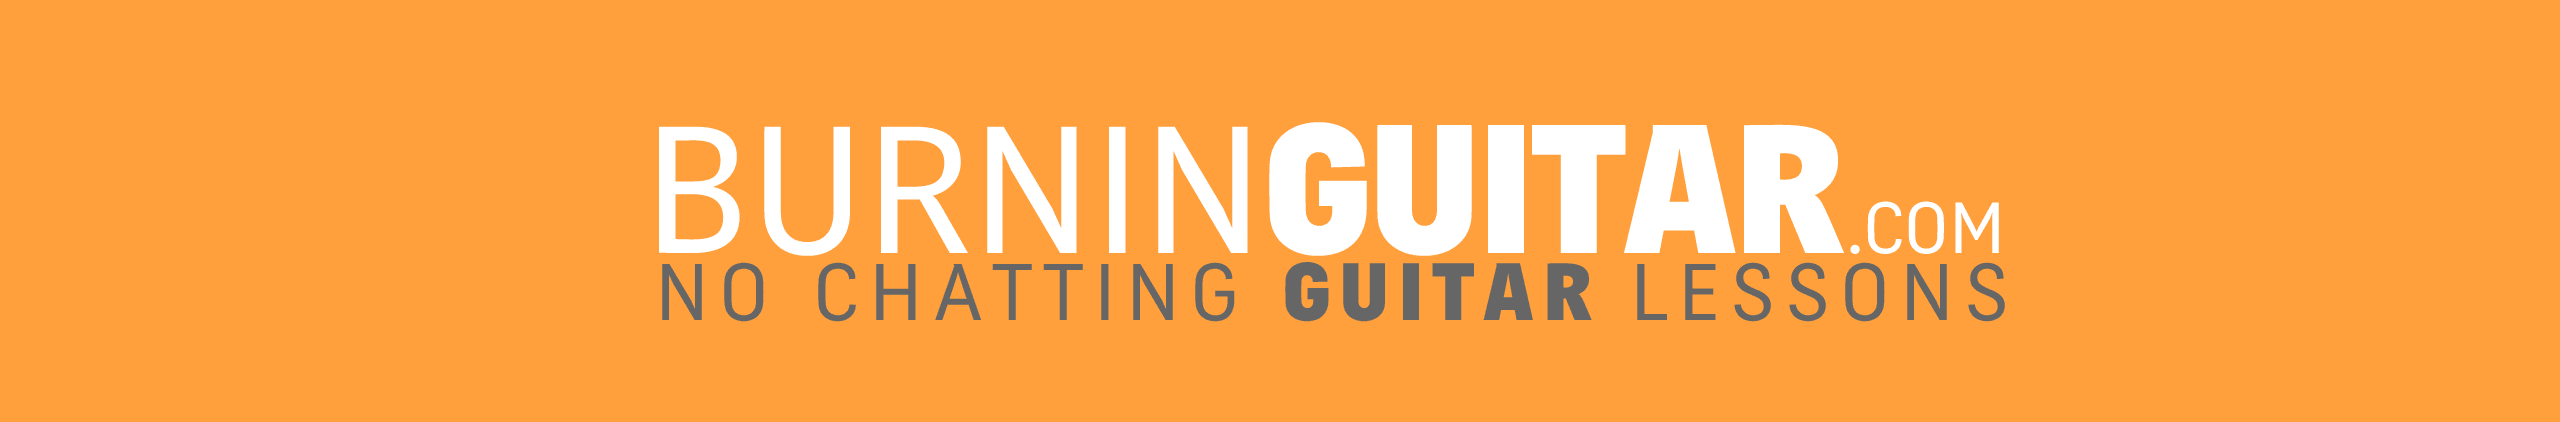 Burninguitar, Blues Guitar Lessons